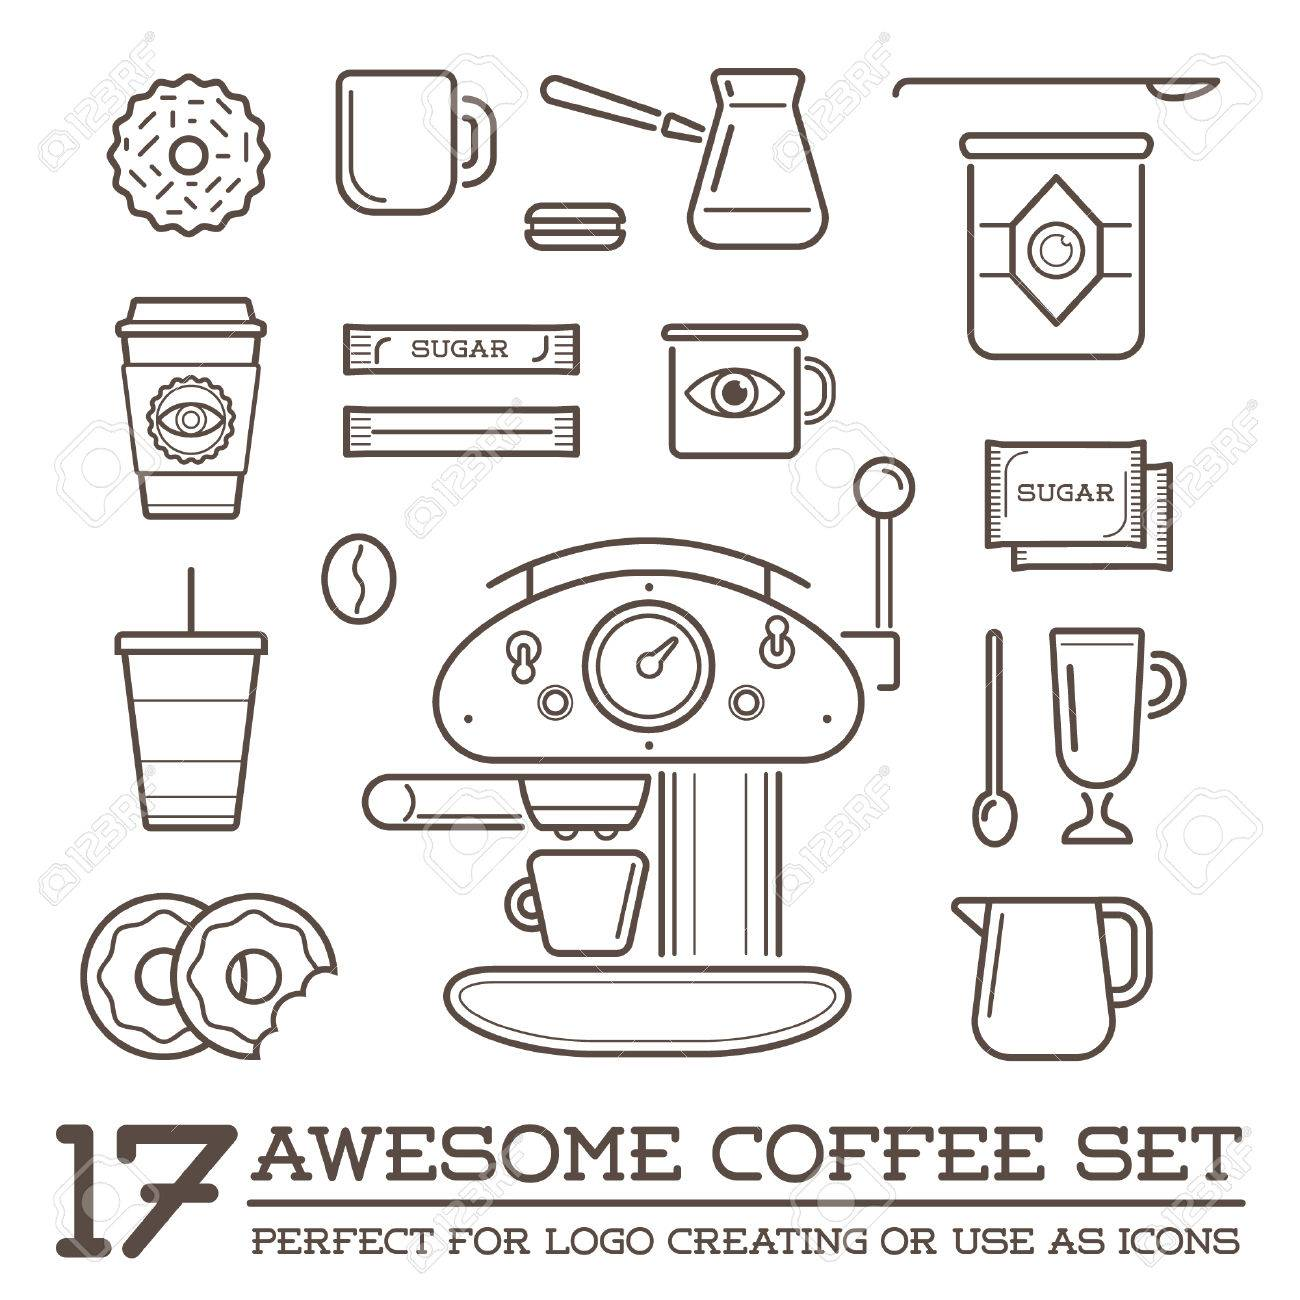 Set of Coffee Elements and Coffee Accessories Illustration - 50187571